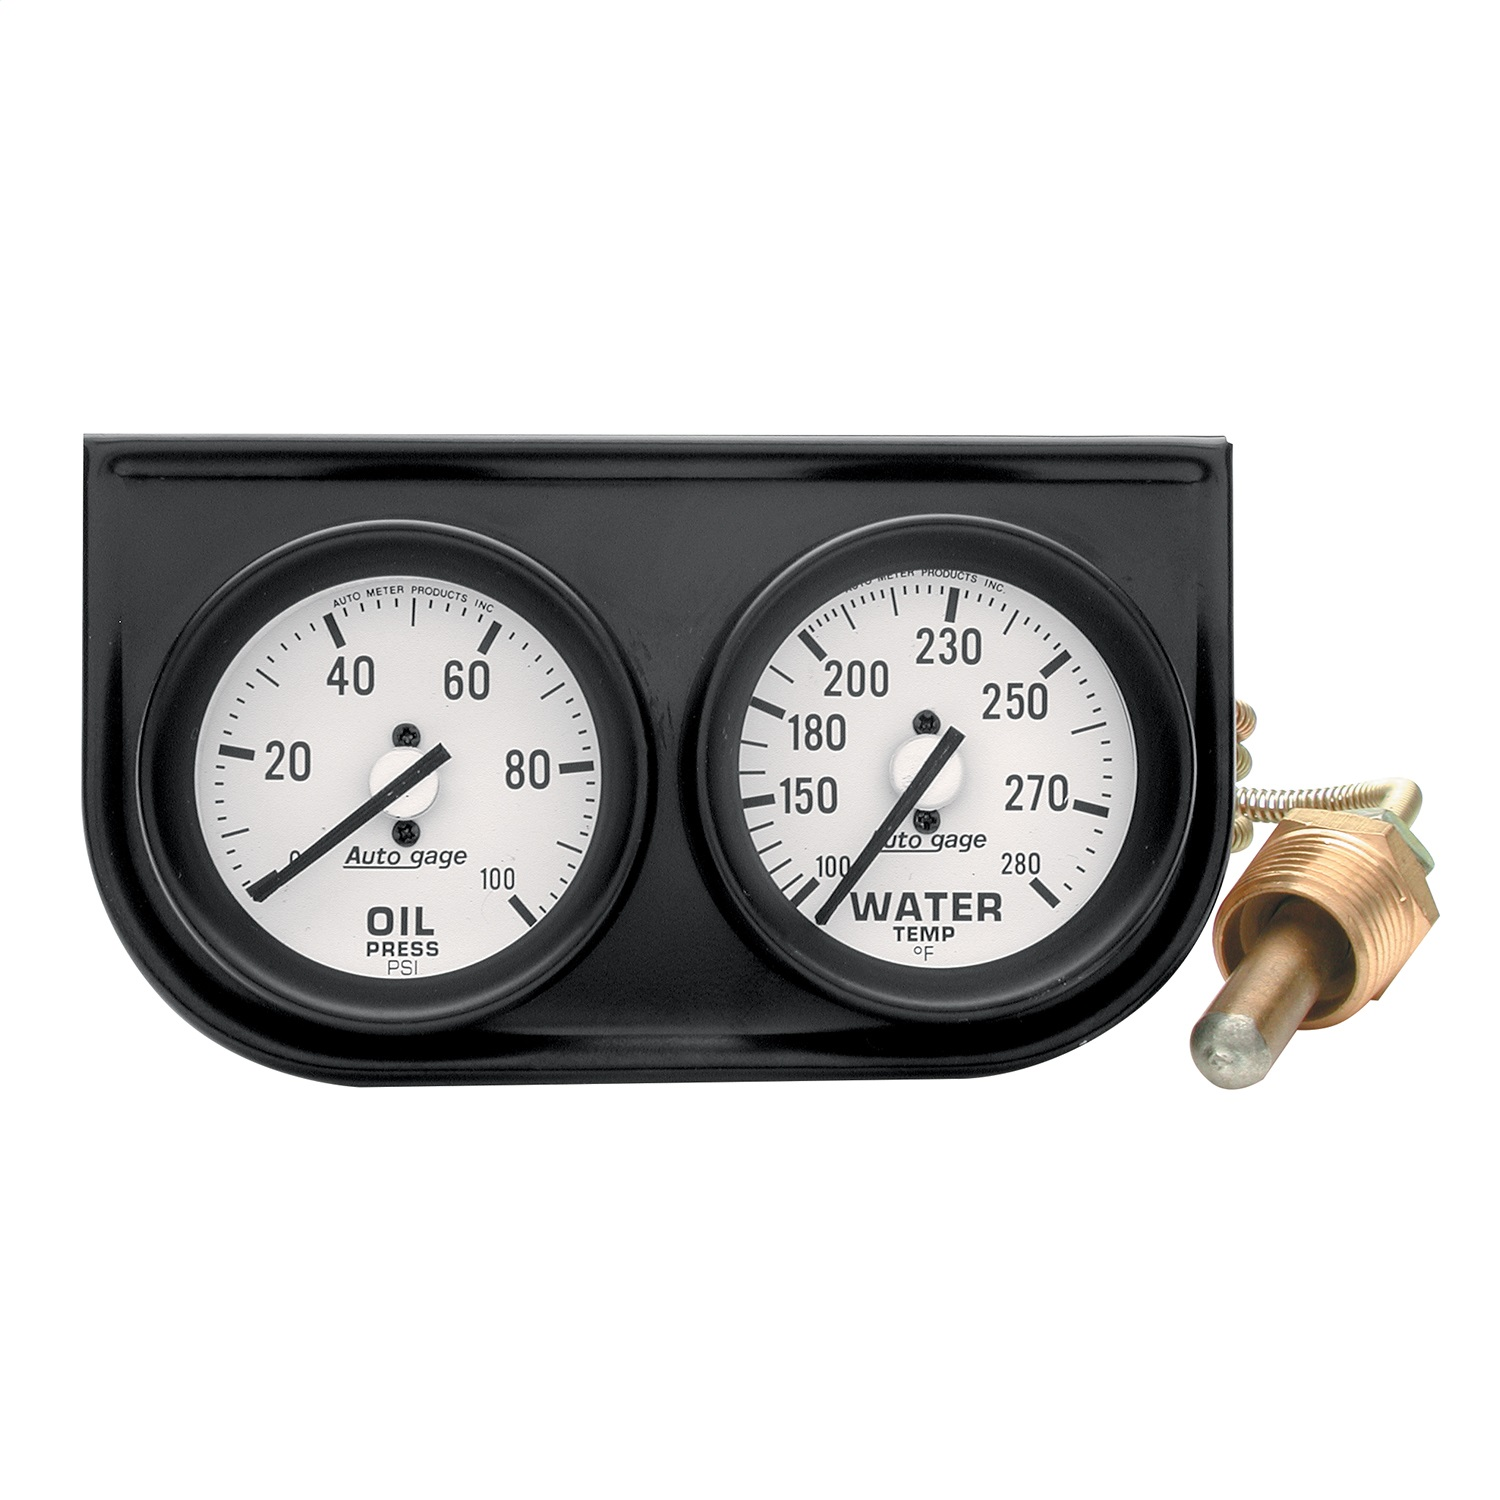 hight resolution of oil pressure water temp 2 in gauge console 100psi 280deg f white dial black bezel autogage